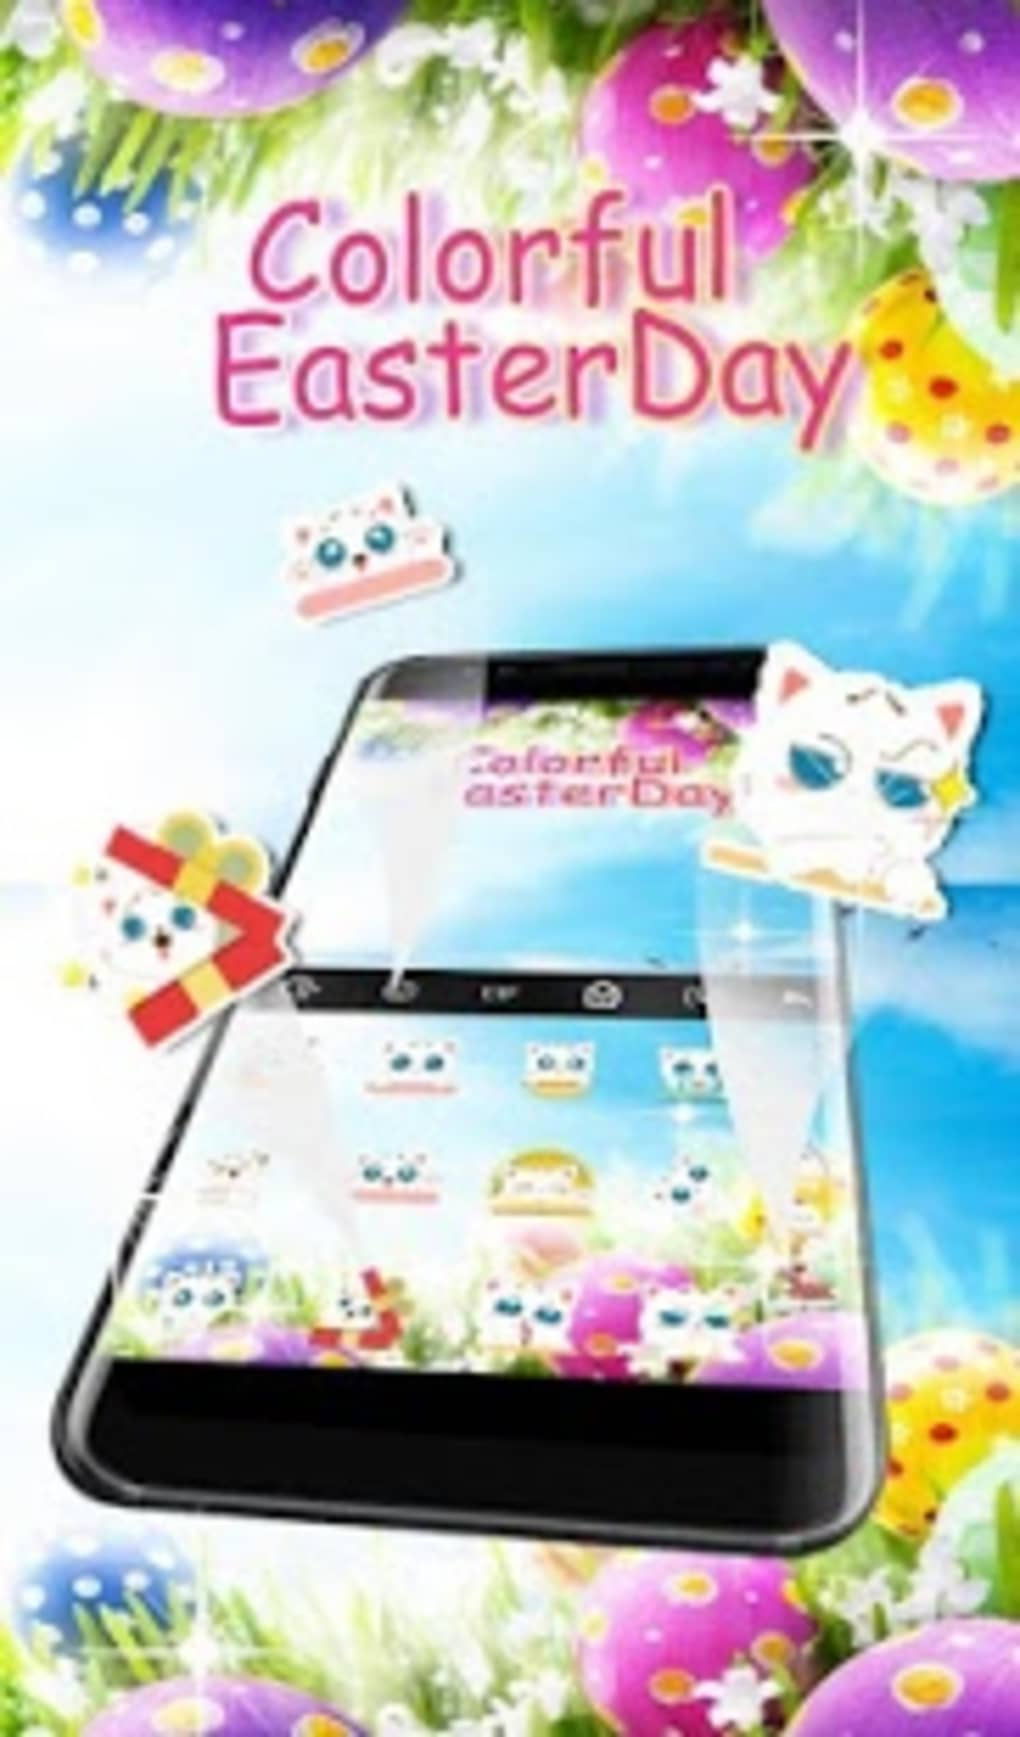 Colorful Easter Day Keyboard Theme